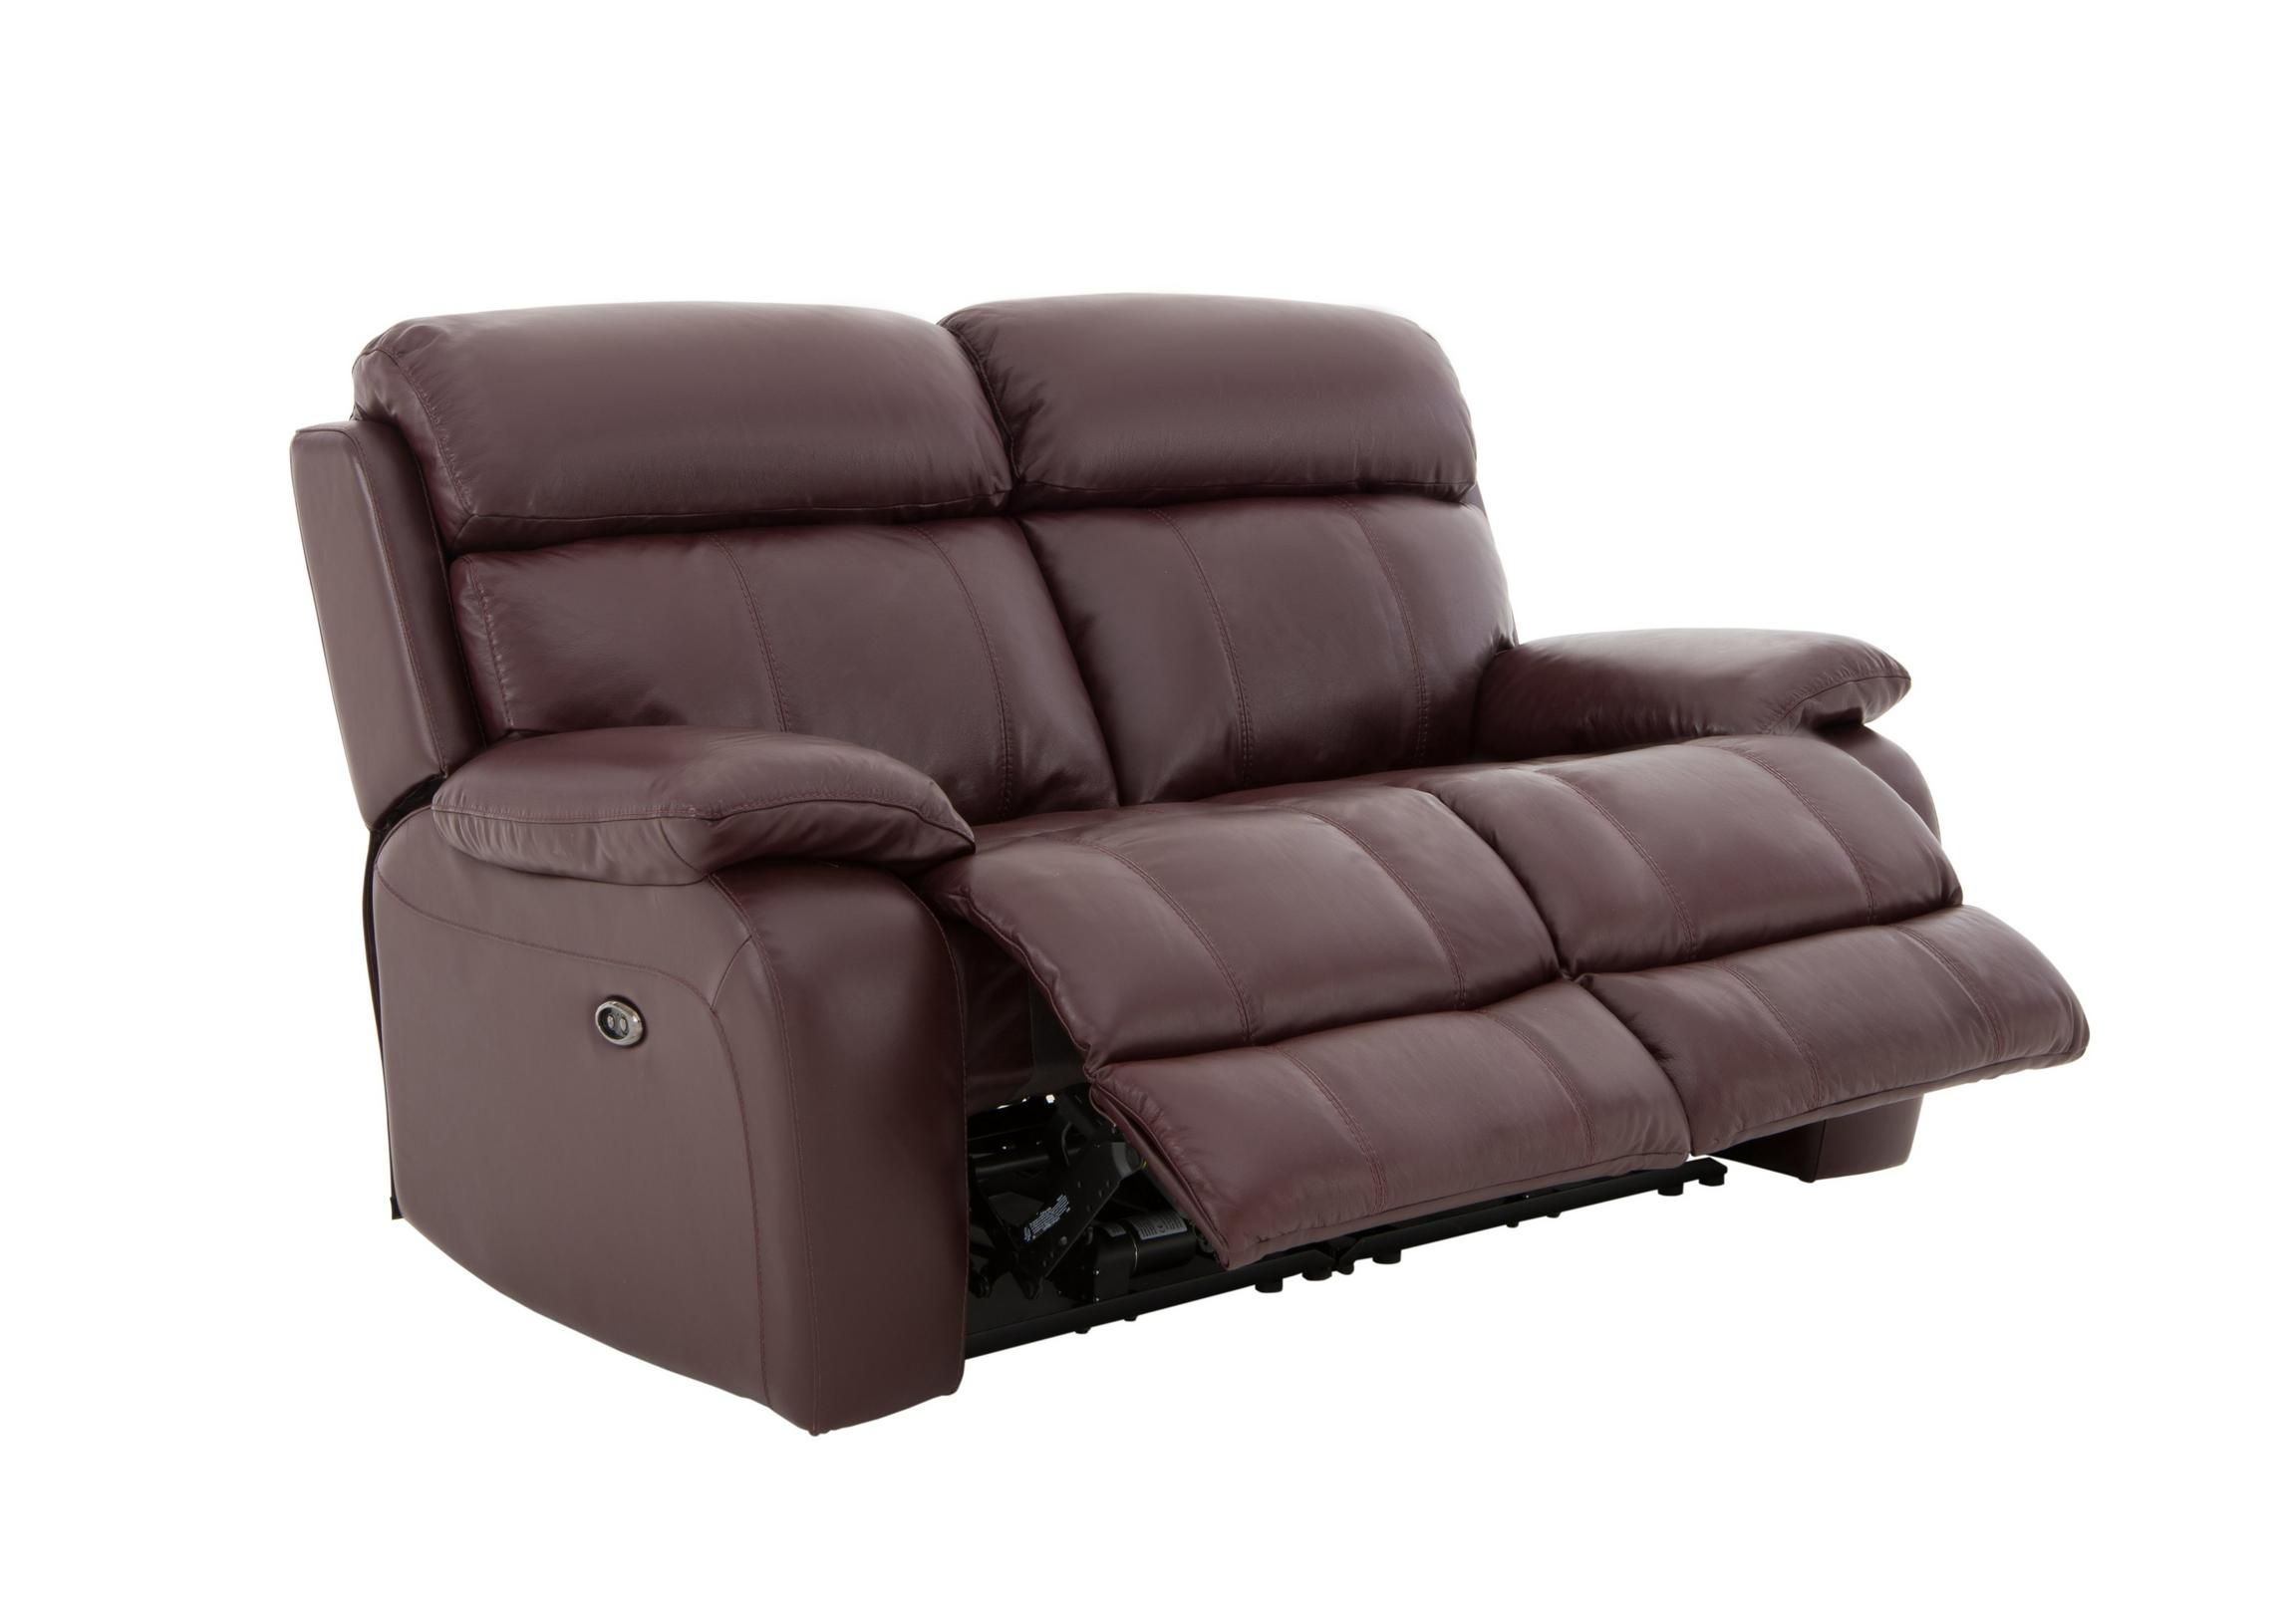 Moreno 2 Seater Leather Recliner Sofa | Decoration | Leather ...